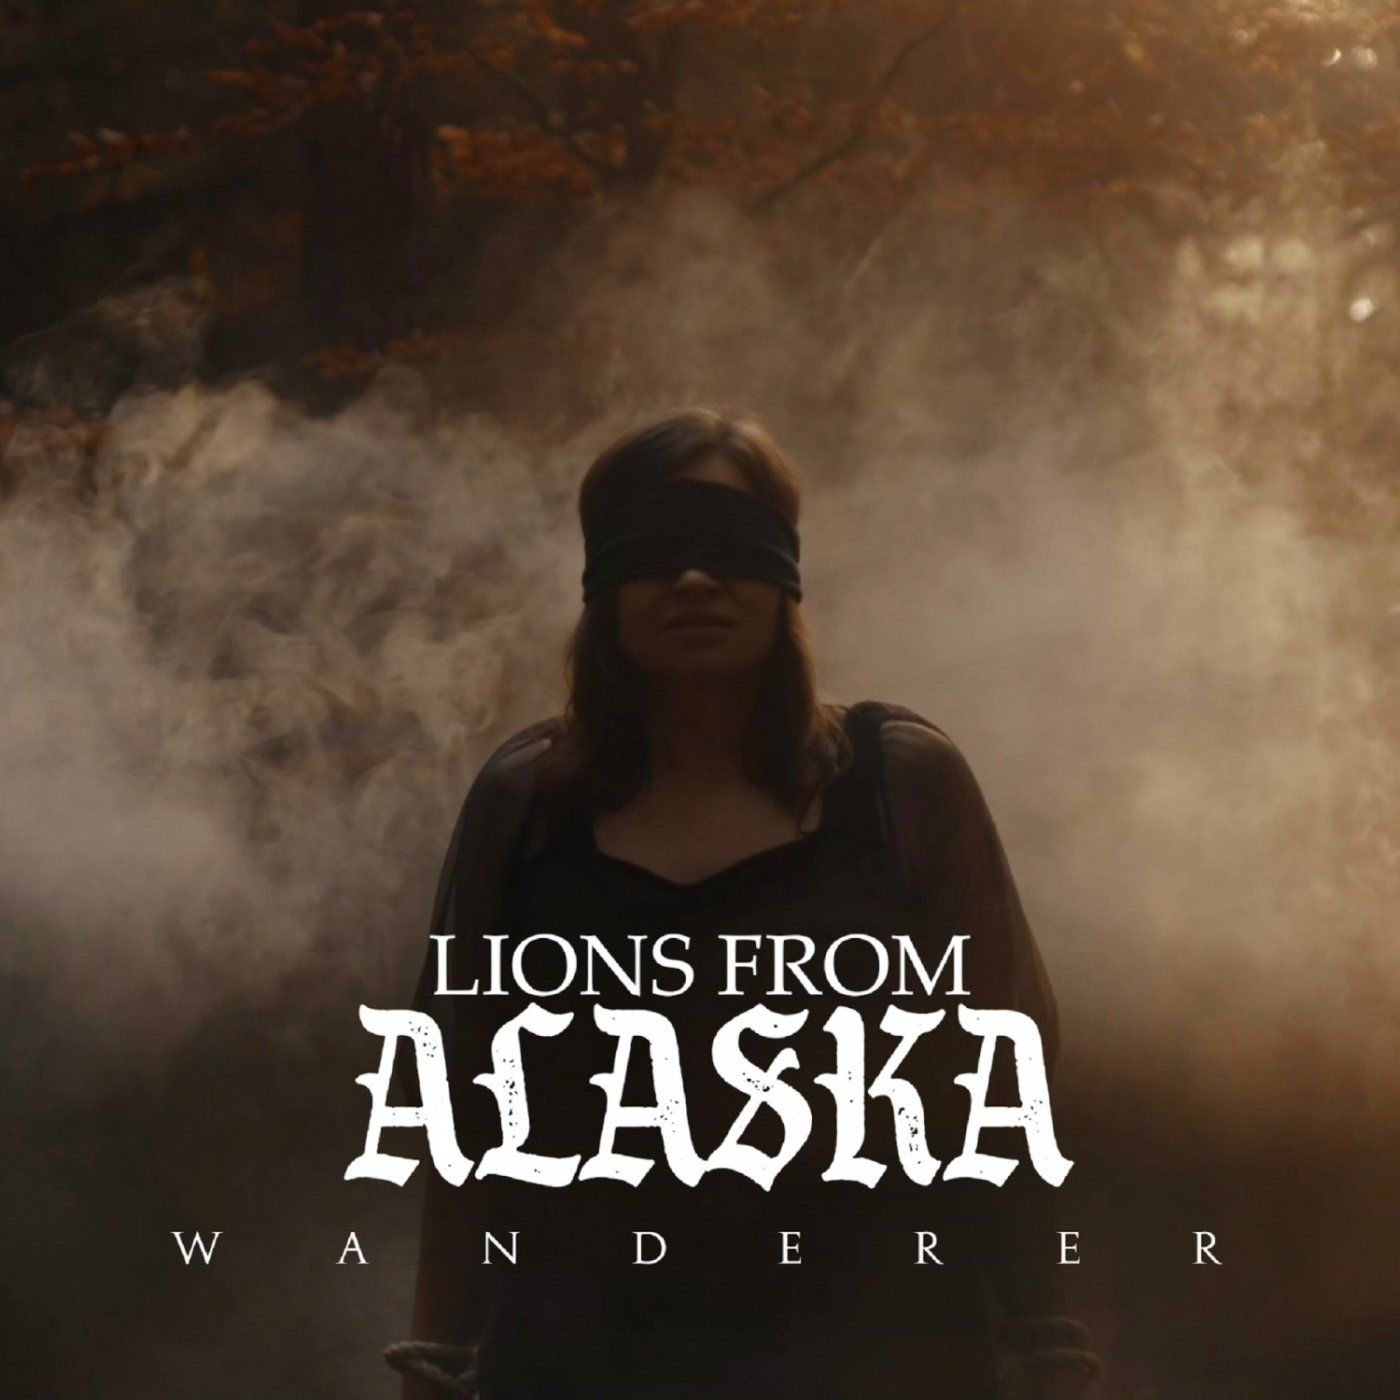 Lions from Alaska - Wanderer [single] (2021)